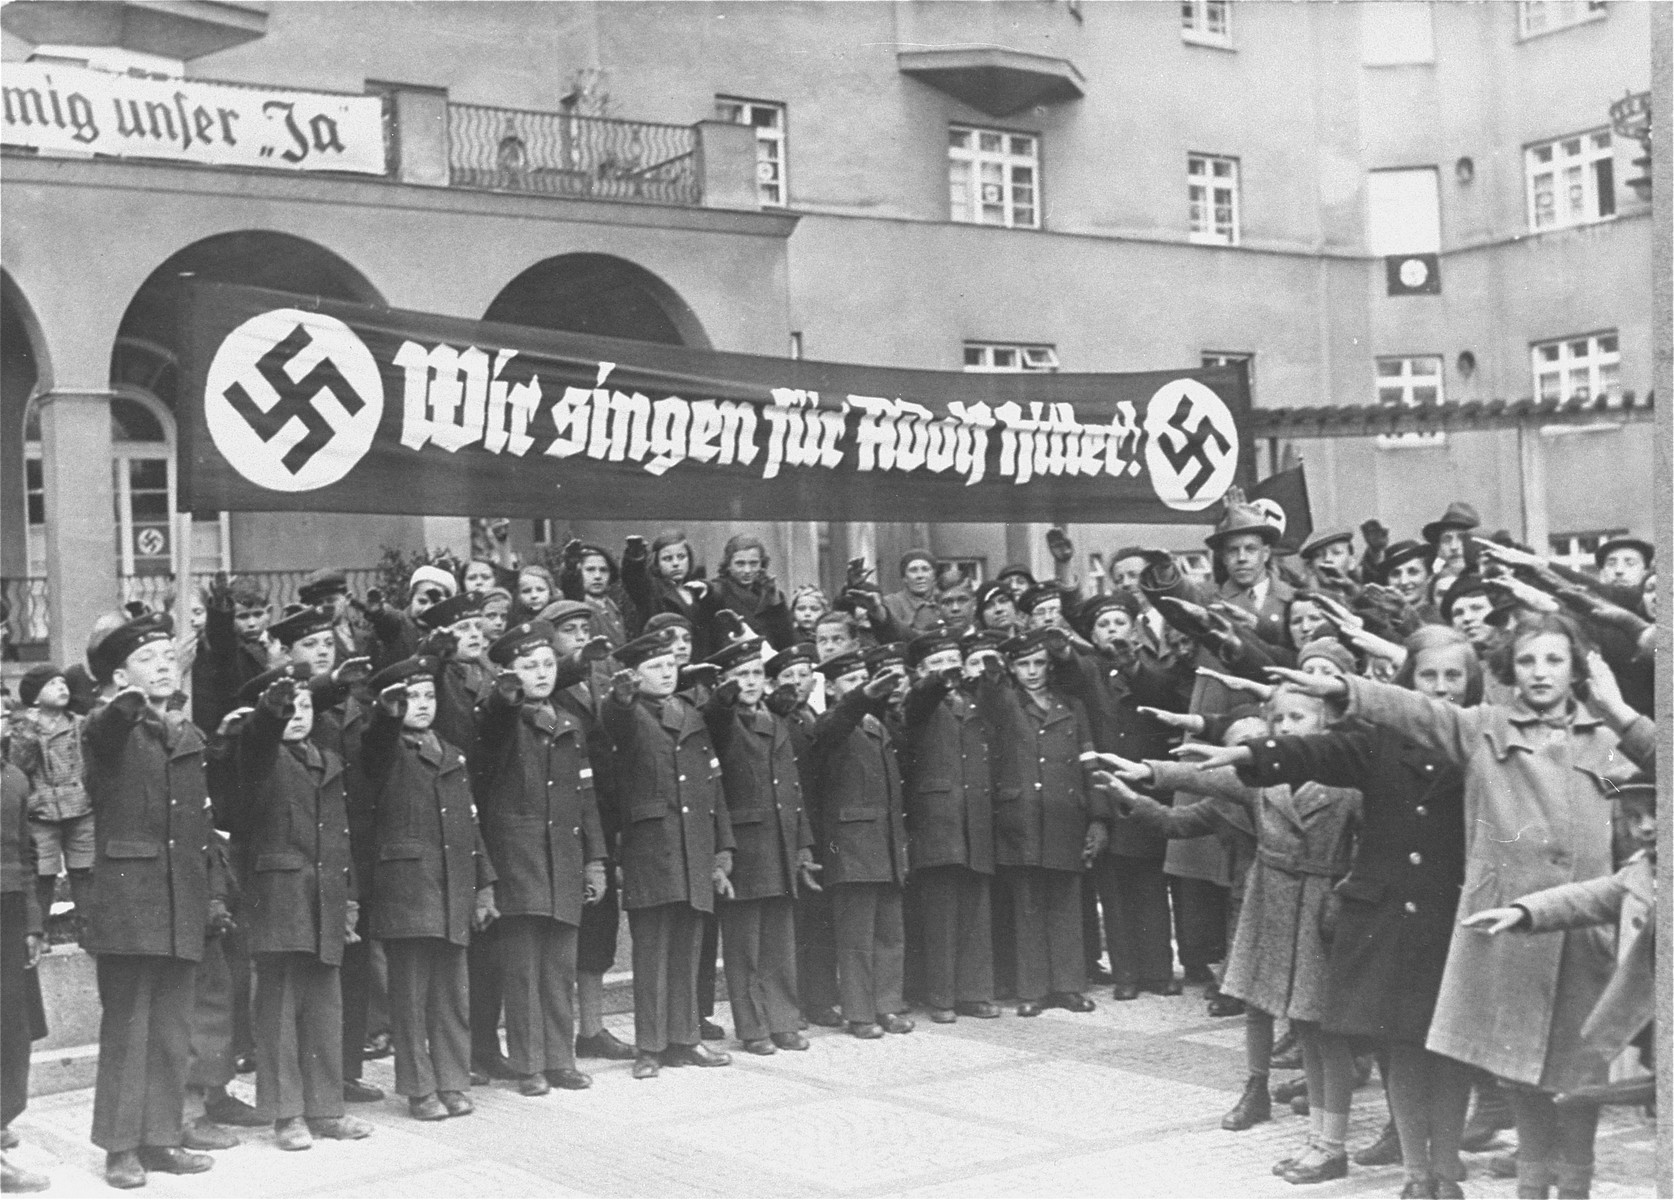 """The Vienna Boys' Choir, assembled under a banner that reads, """"We sing for Adolf Hitler!"""" salute Adolf Hitler and his entourage during his first official visit to Vienna after the Anschluss."""